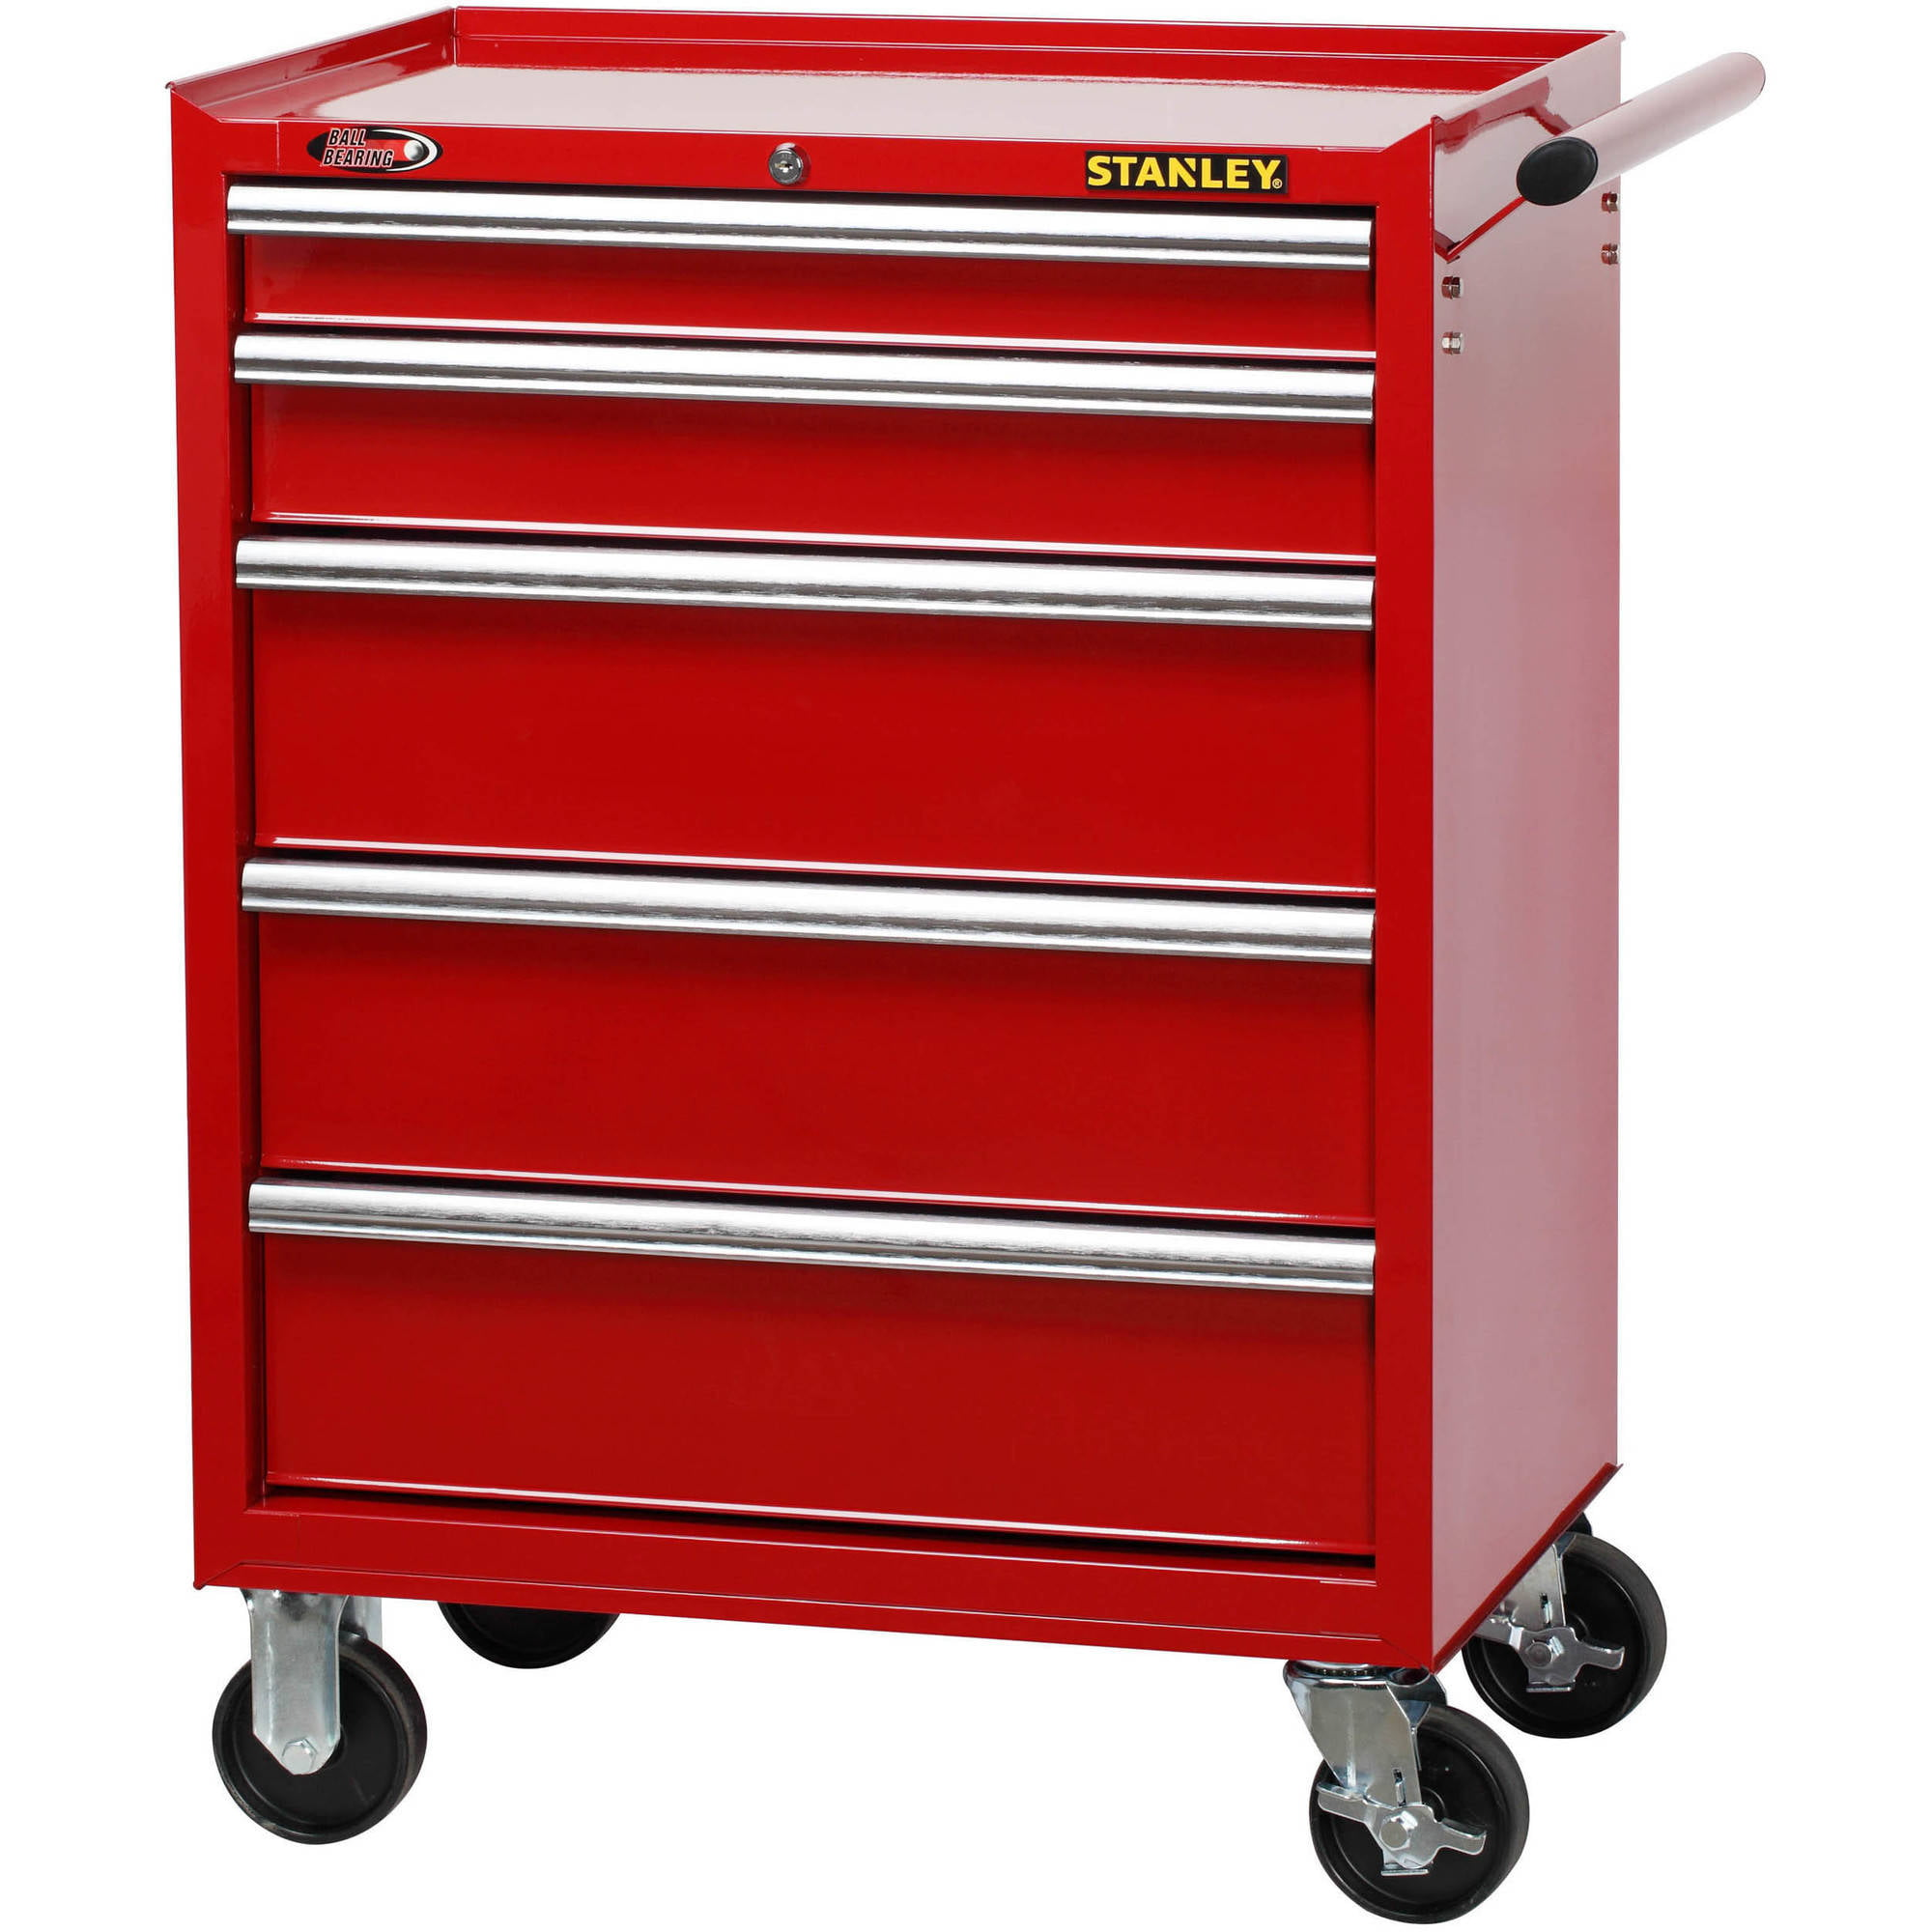 Costway 2pc Mini Tool Chest U0026 Cabinet Storage Box Rolling Garage Toolbox  Organizer   Walmart.com